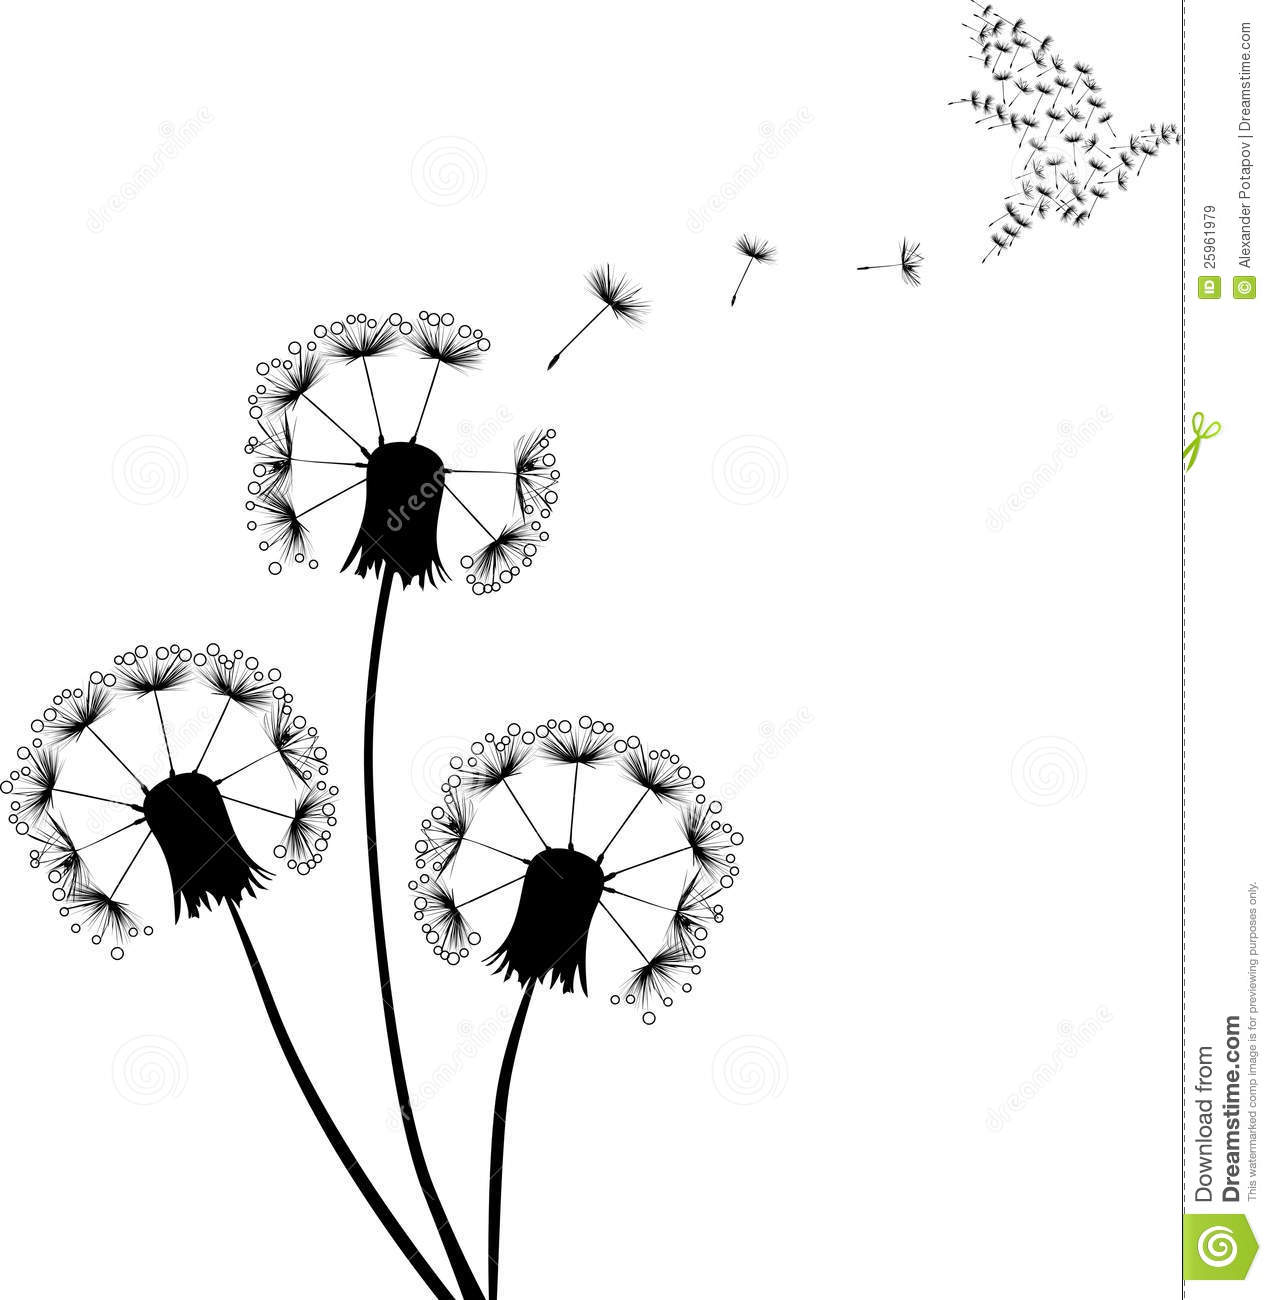 Wild Animal Wall Stickers Dove And Black Dandelions Royalty Free Stock Images